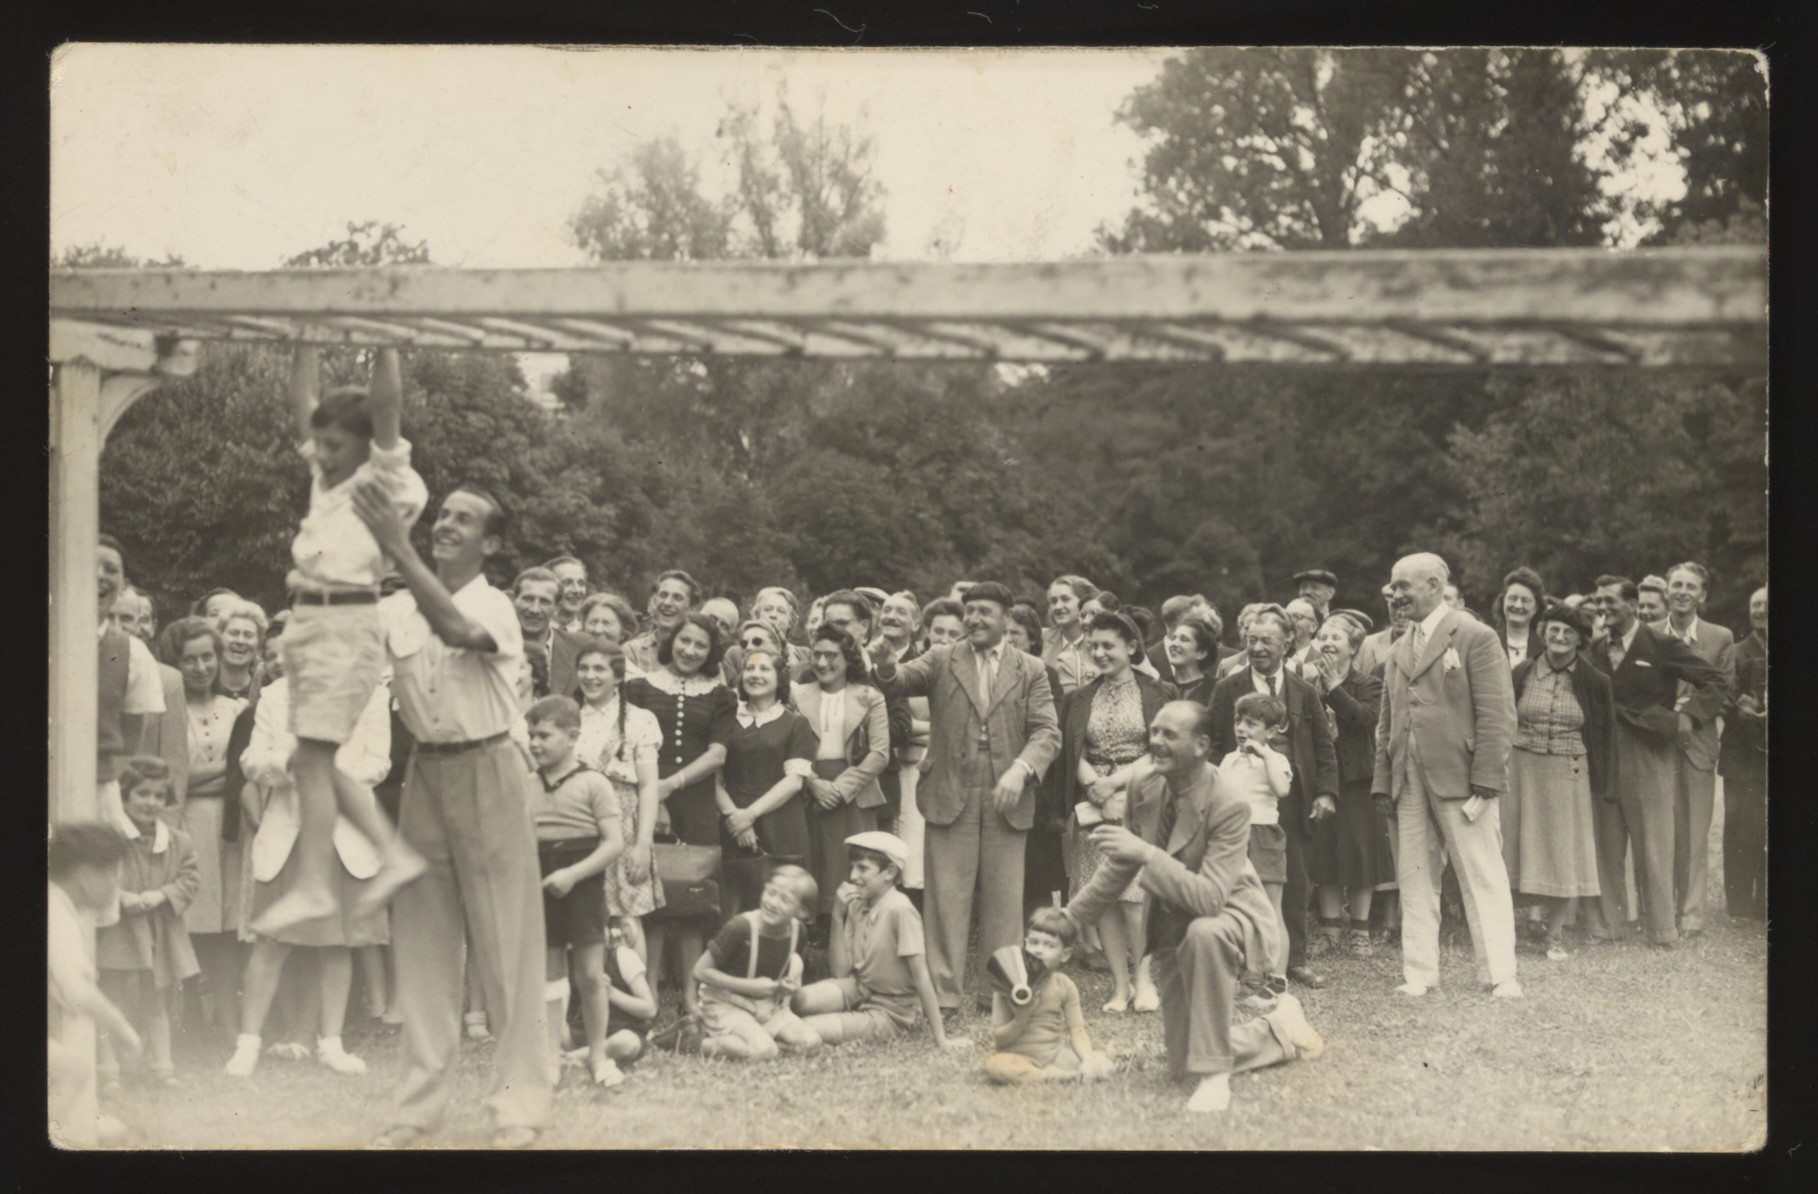 Internees participate in a sports day at the Vittel internment camp for foreign nationals.